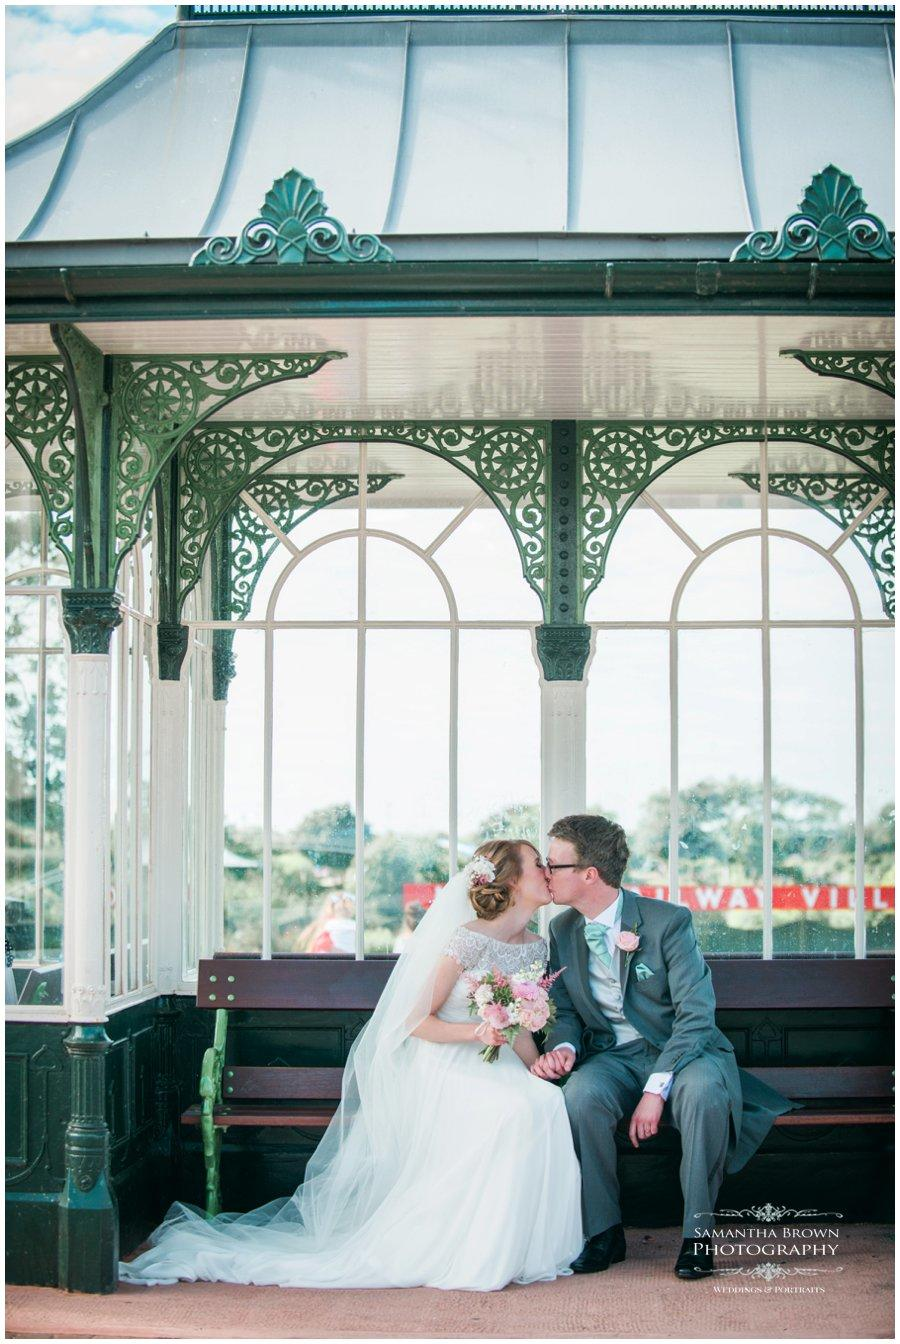 wedding-photography-liverpool-by-samantha-brown_0251